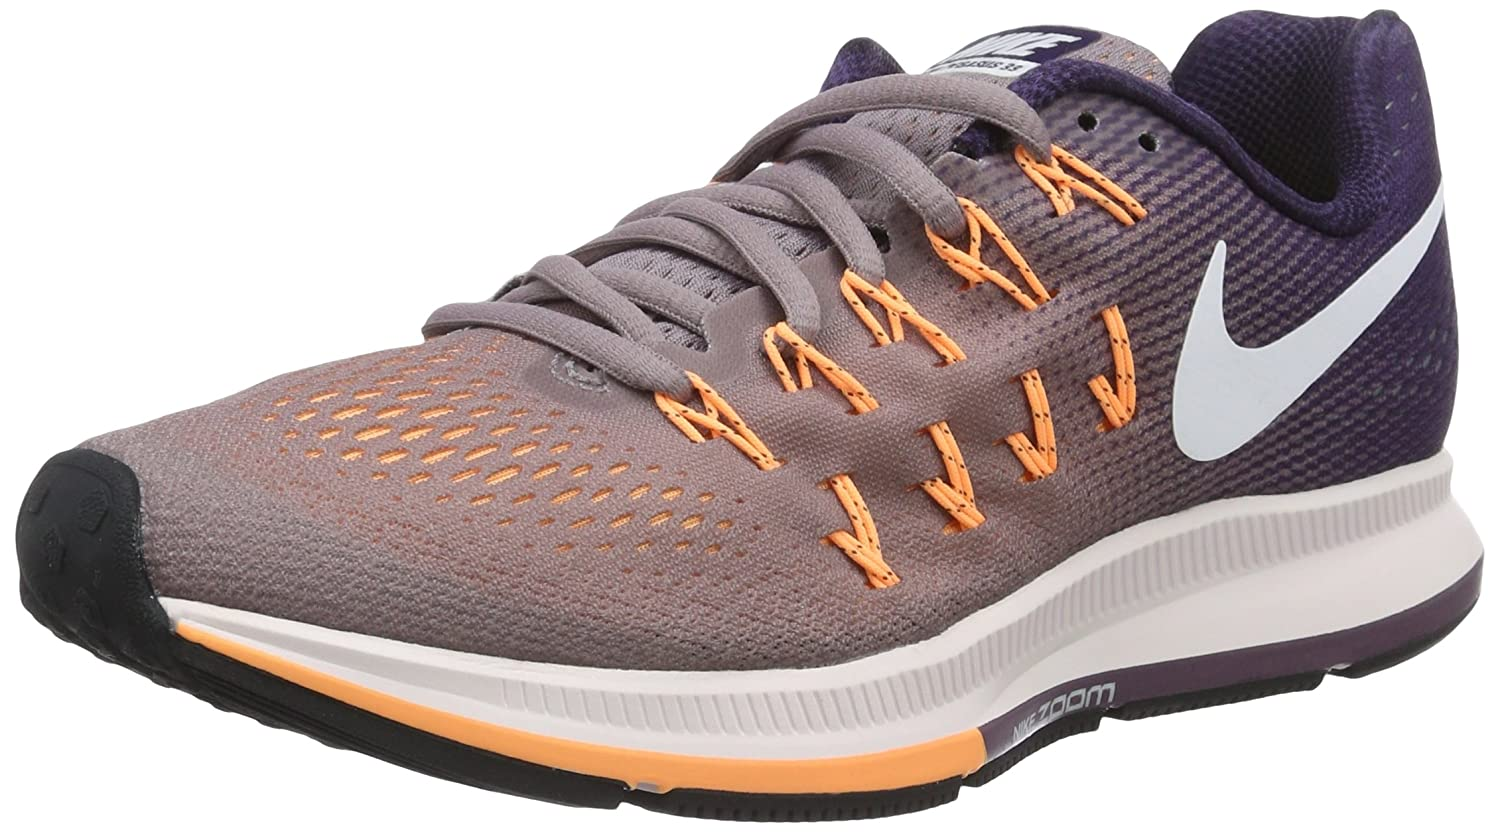 NIKE Women's Air Zoom Pegasus 33 B01CIYTRX6 6.5 B(M) US|Purple